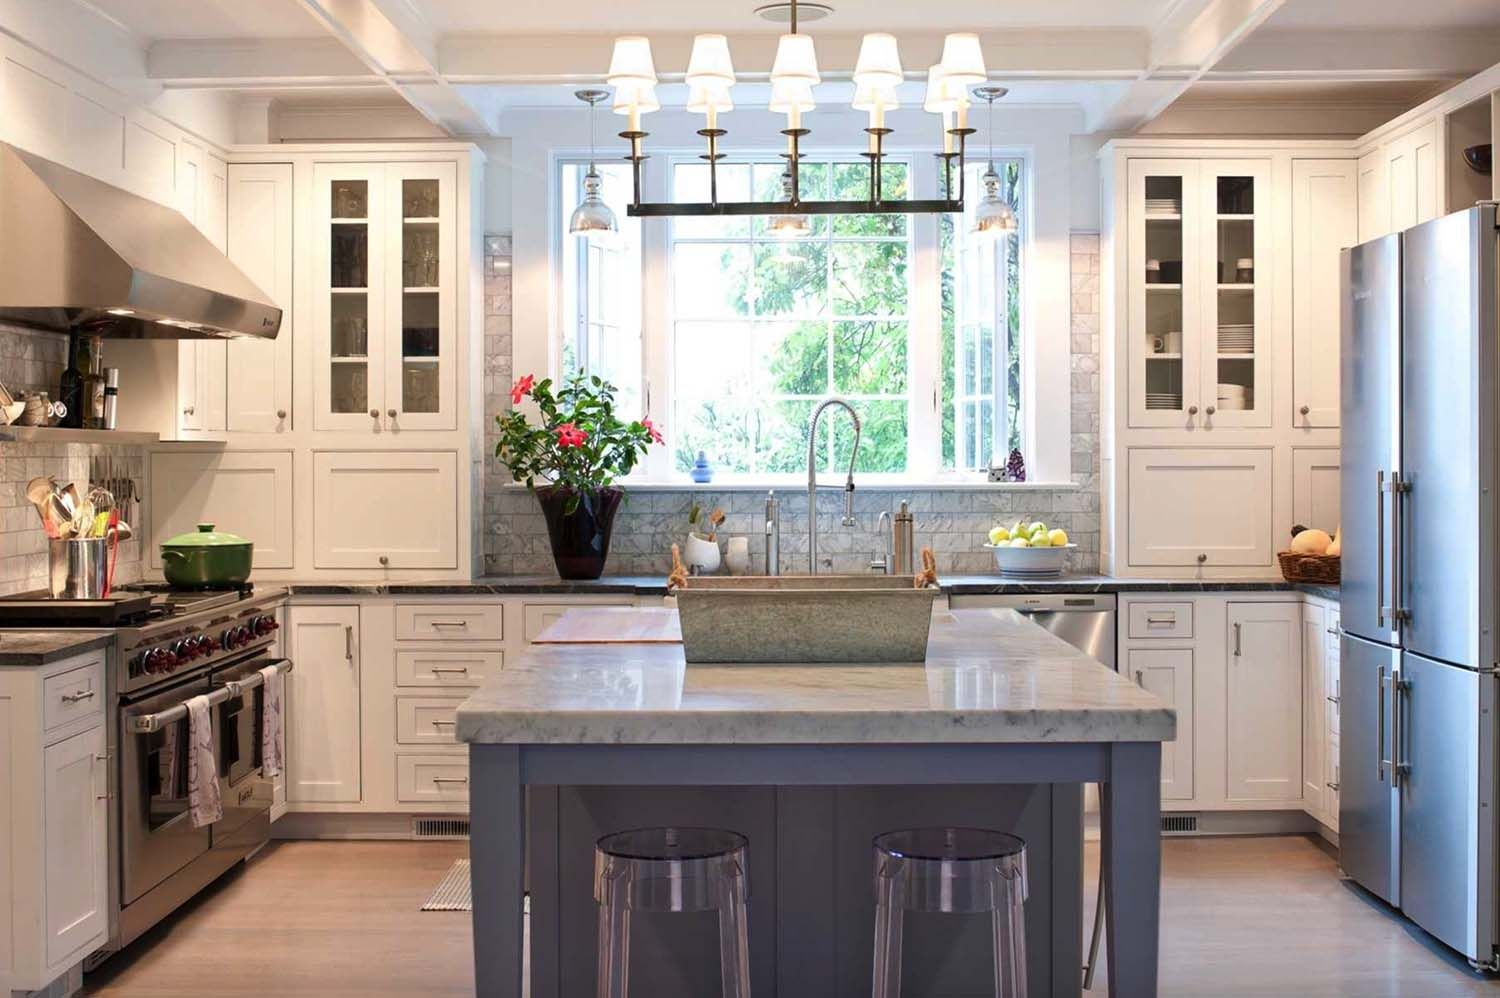 25 Breathtaking Carrara Marble Kitchens For Your Inspiration Kitchen Cabinet Styles Country Kitchen Country Kitchen Backsplash